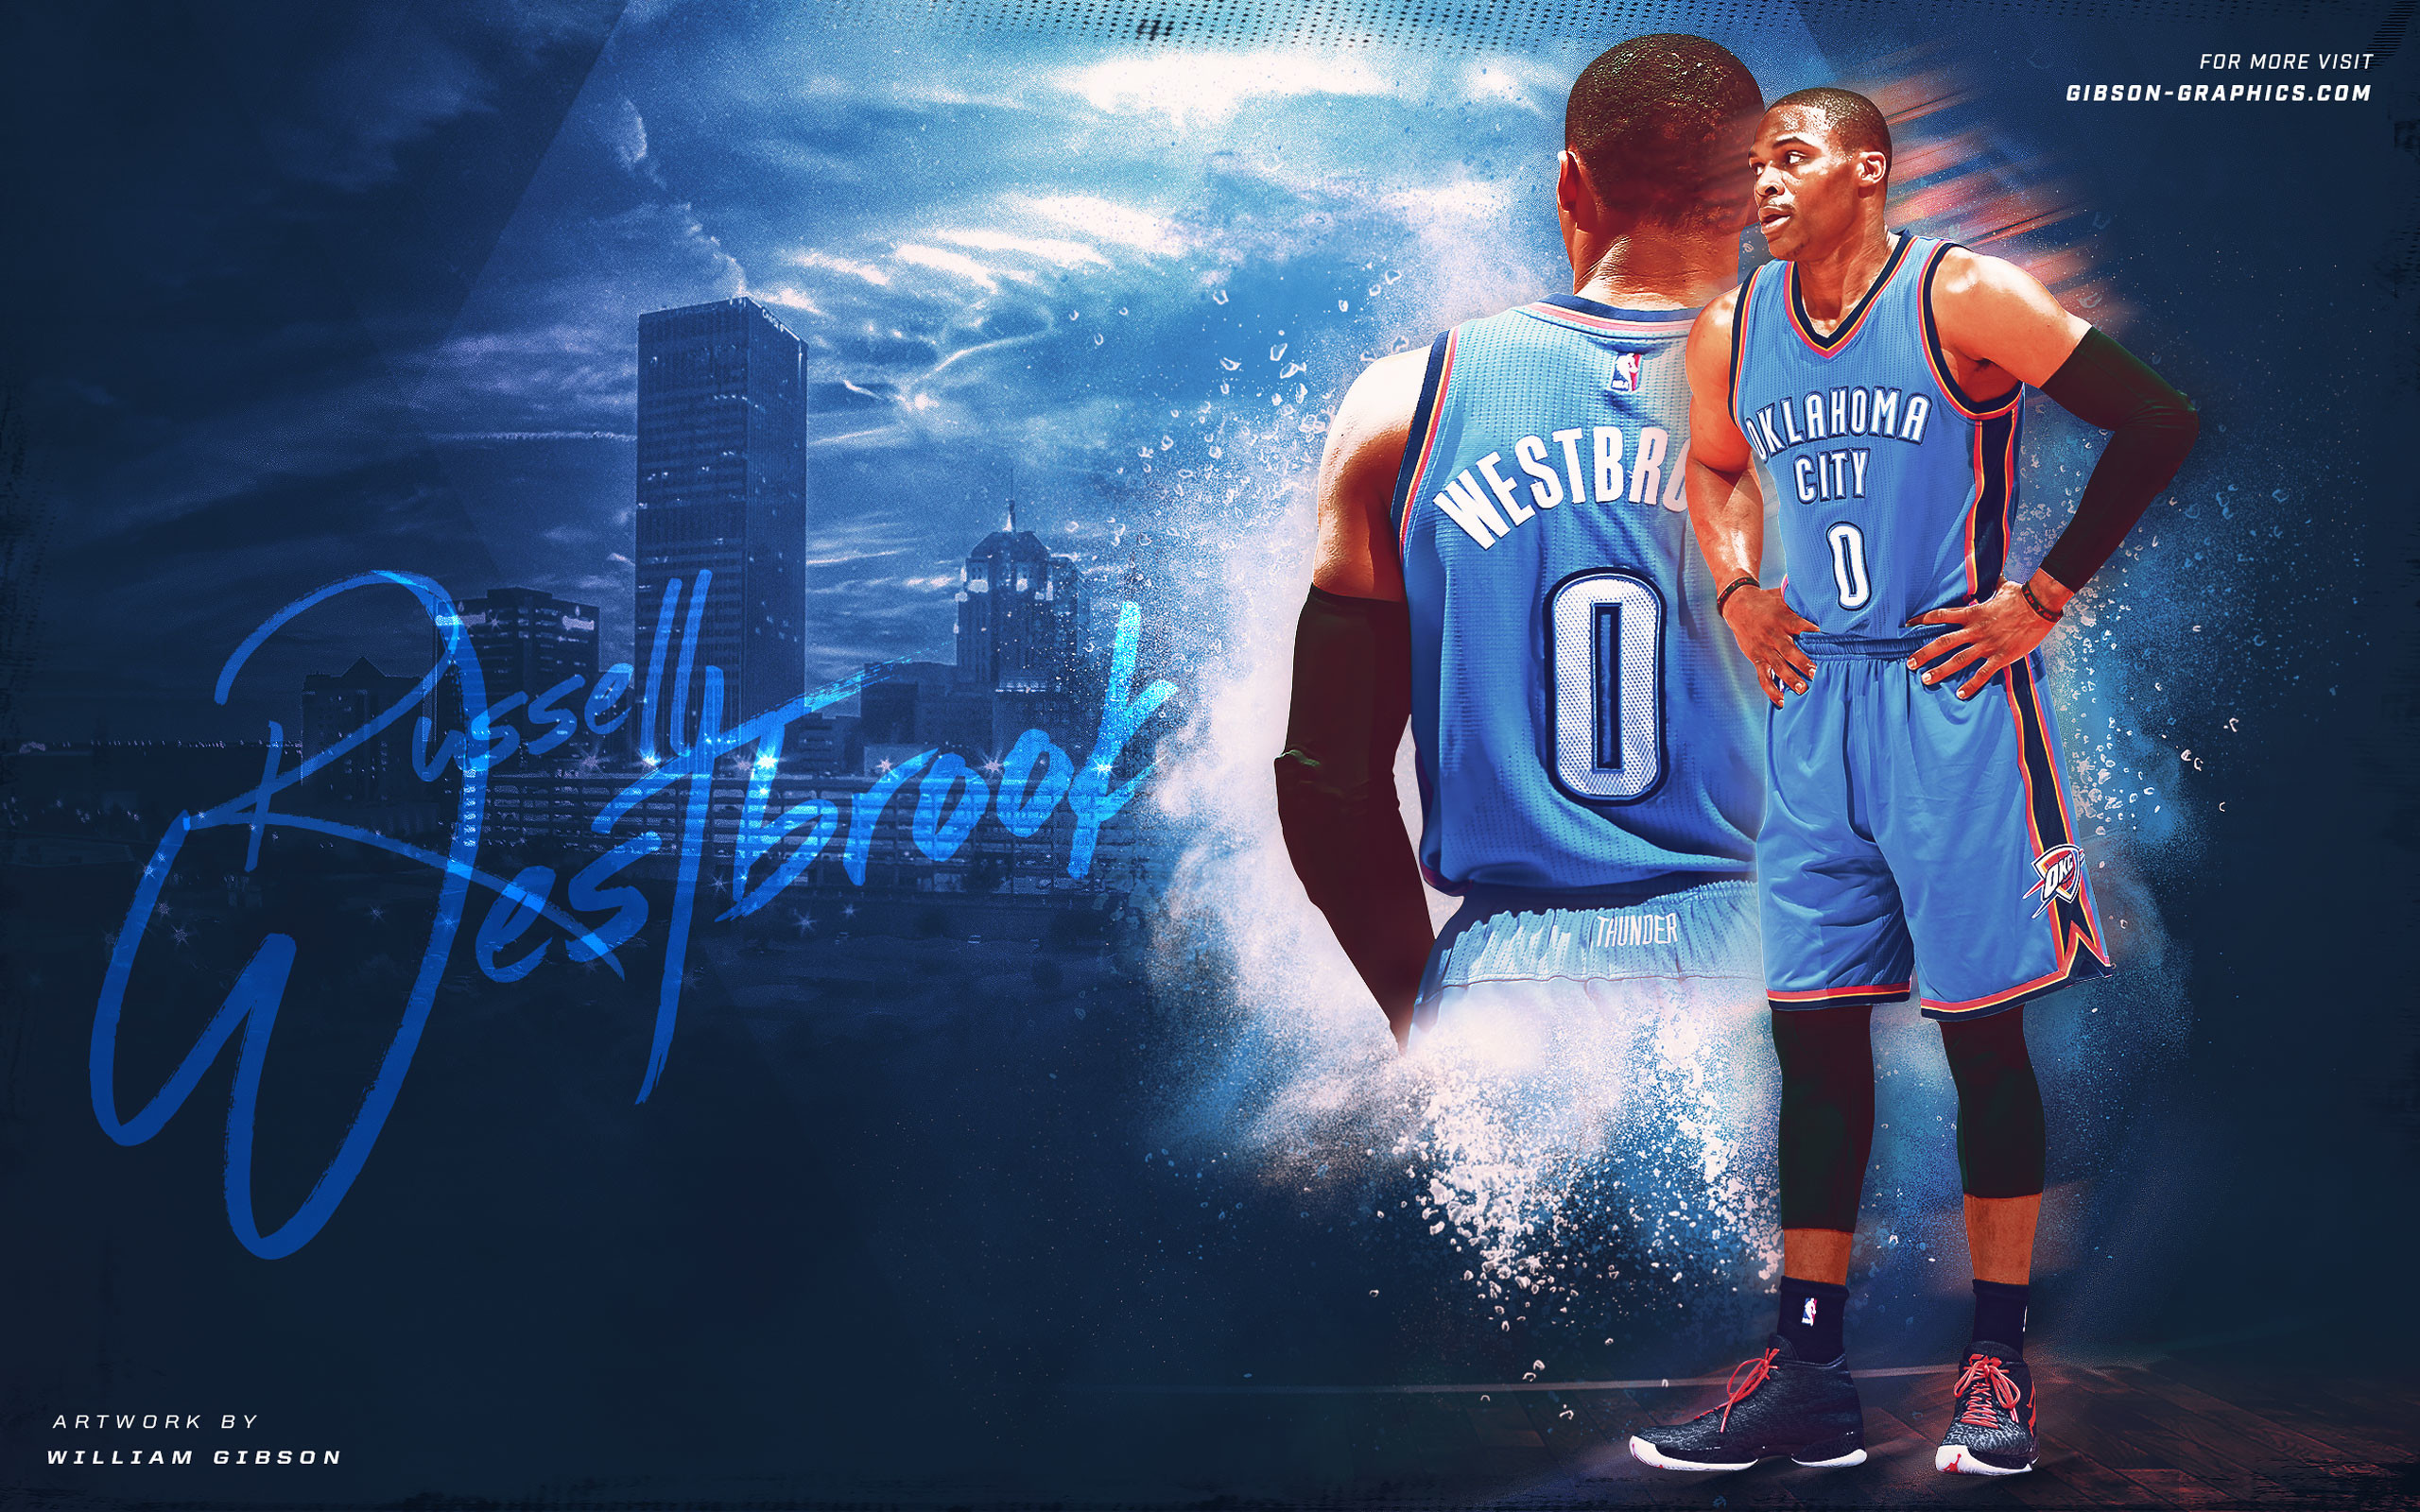 Kevin Durant and Russell Westbrook 2018 Wallpaper (72+ images)